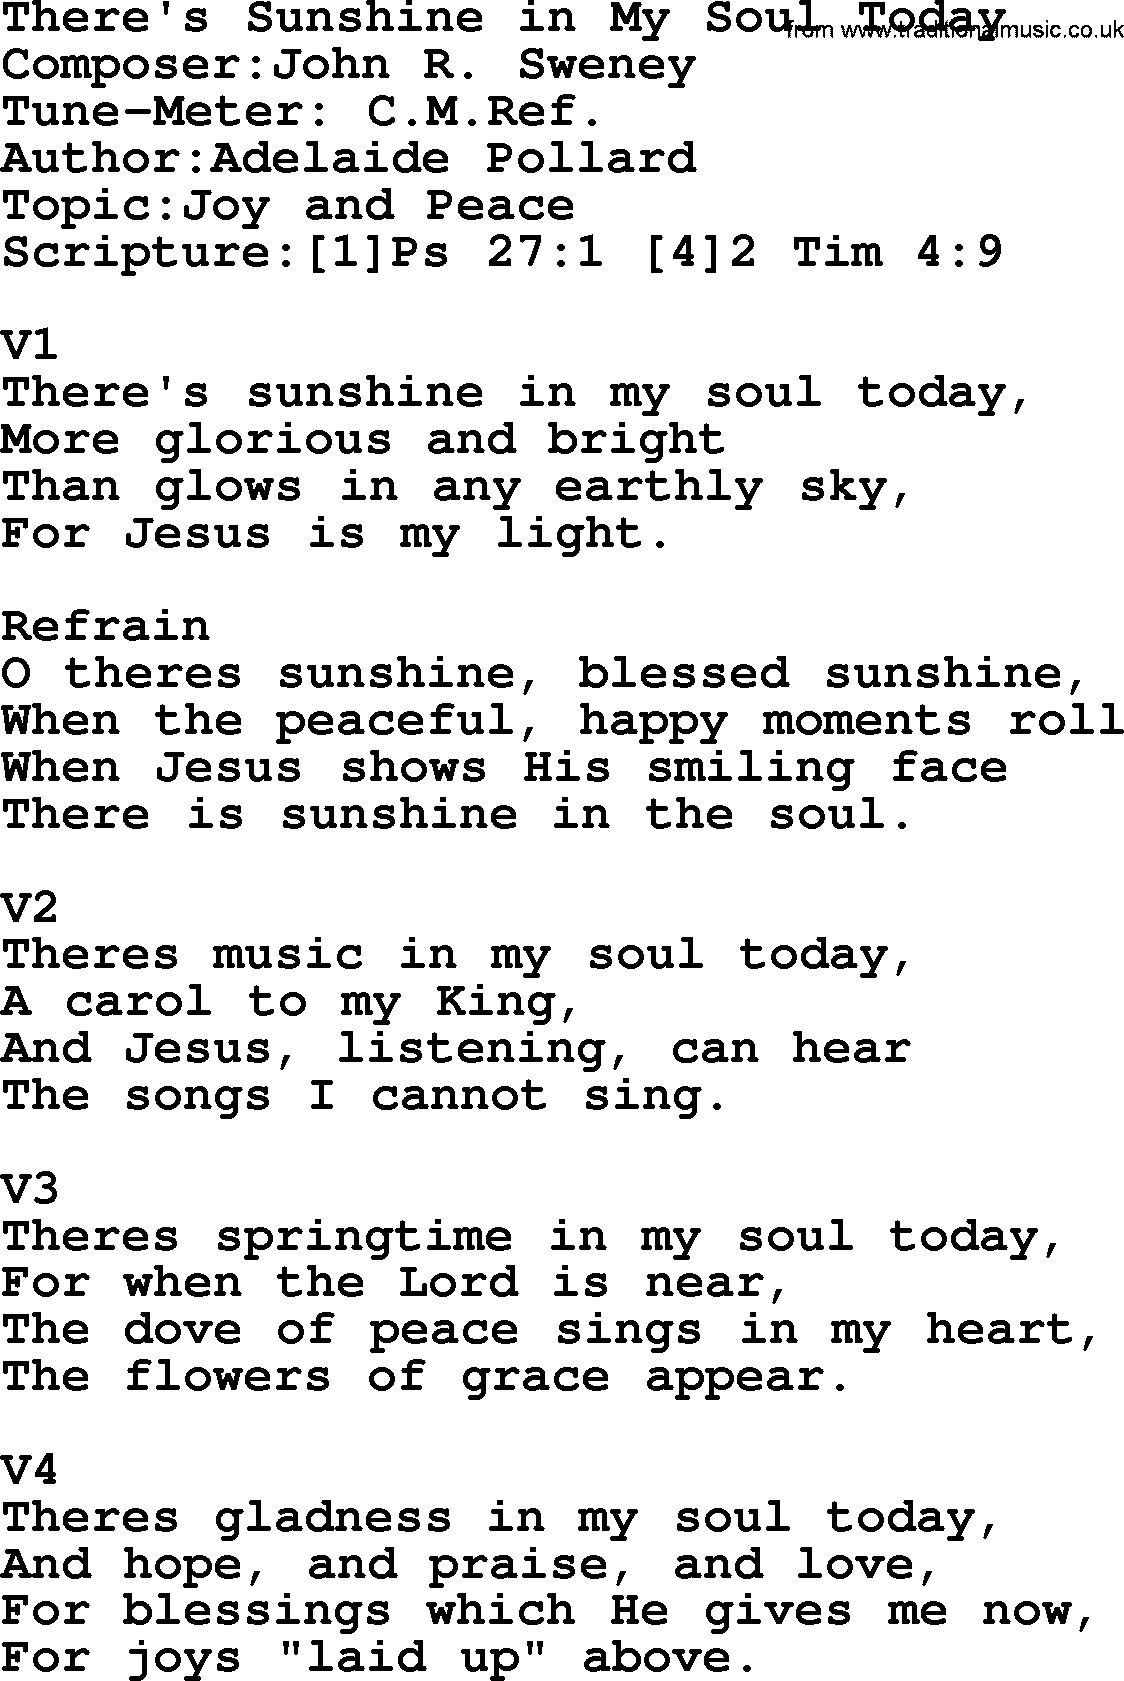 Adventist Hymn Theres Sunshine In My Soul Today Christian Song